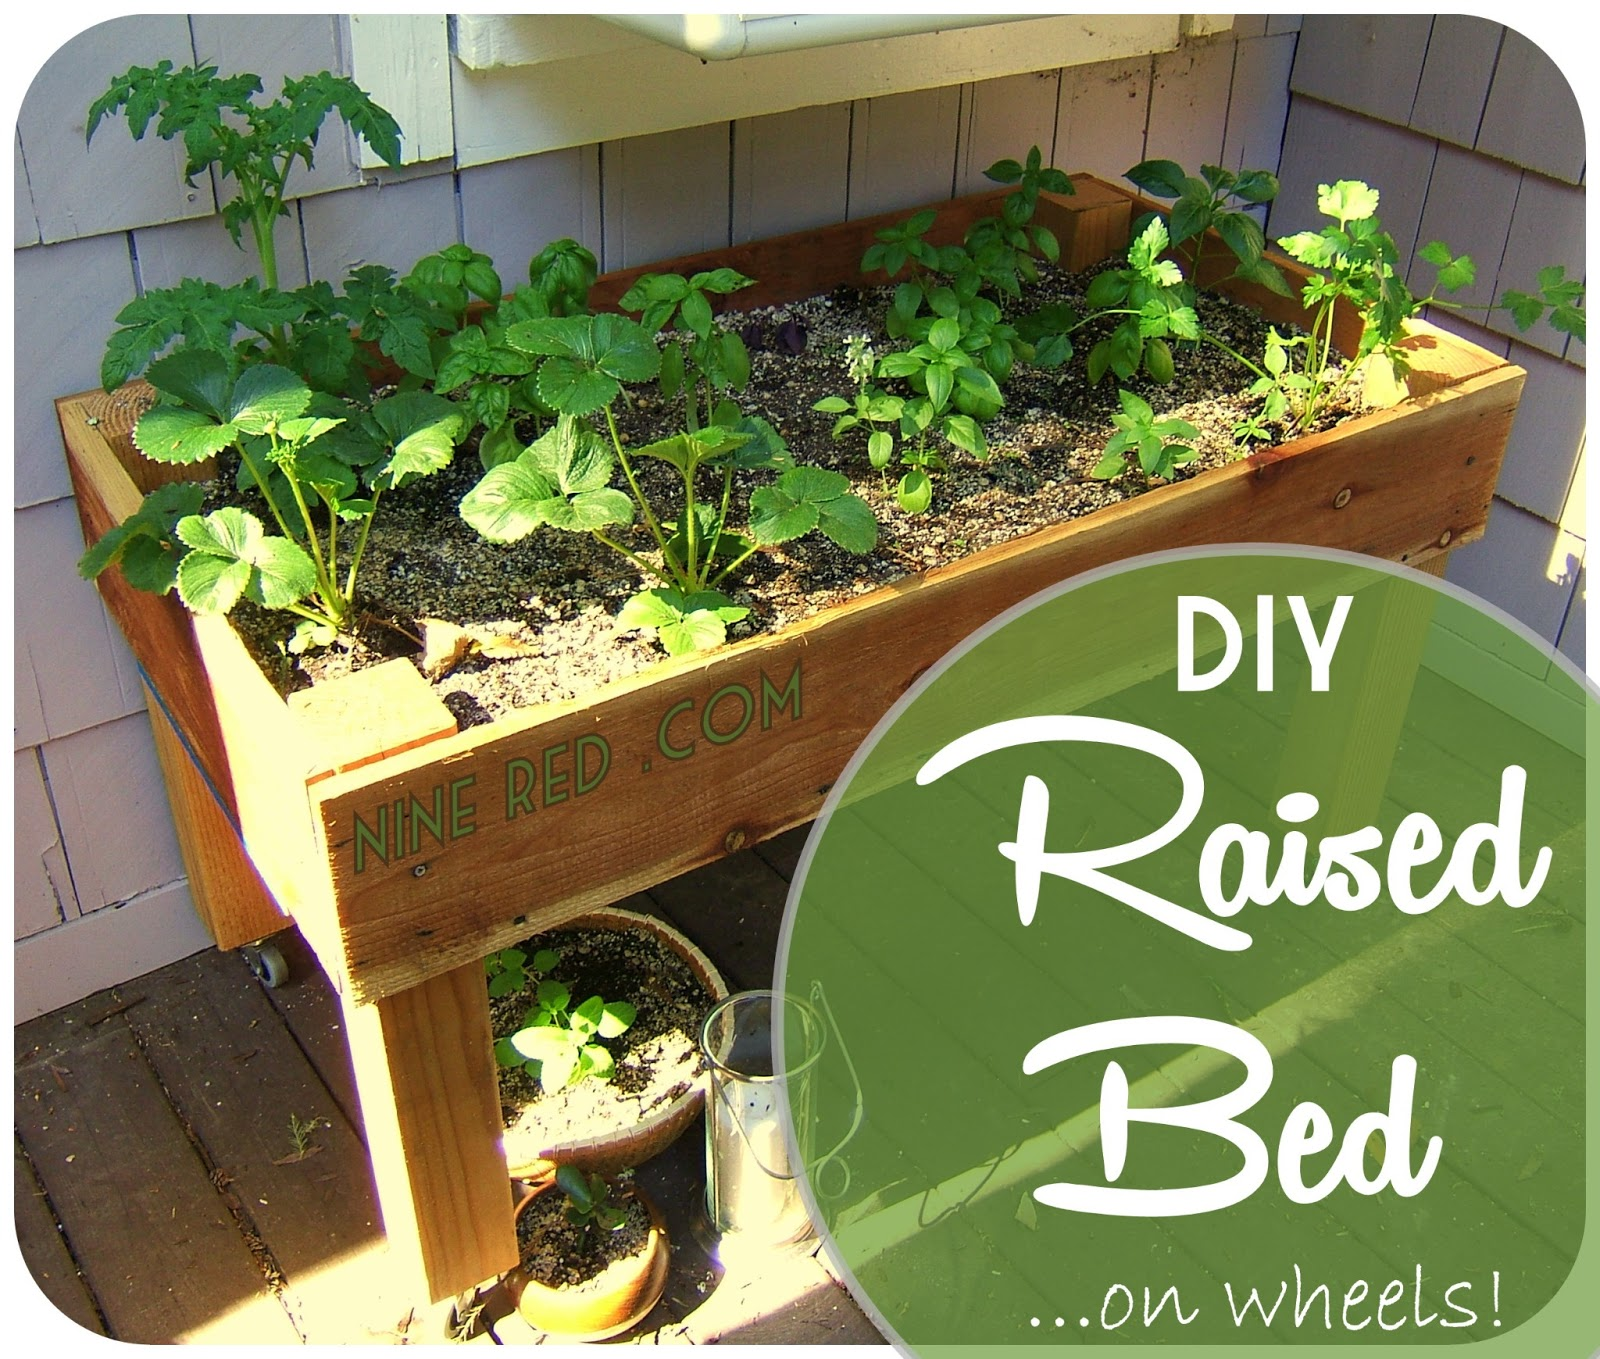 Nine Red DIY Simple Raised Bed on wheels